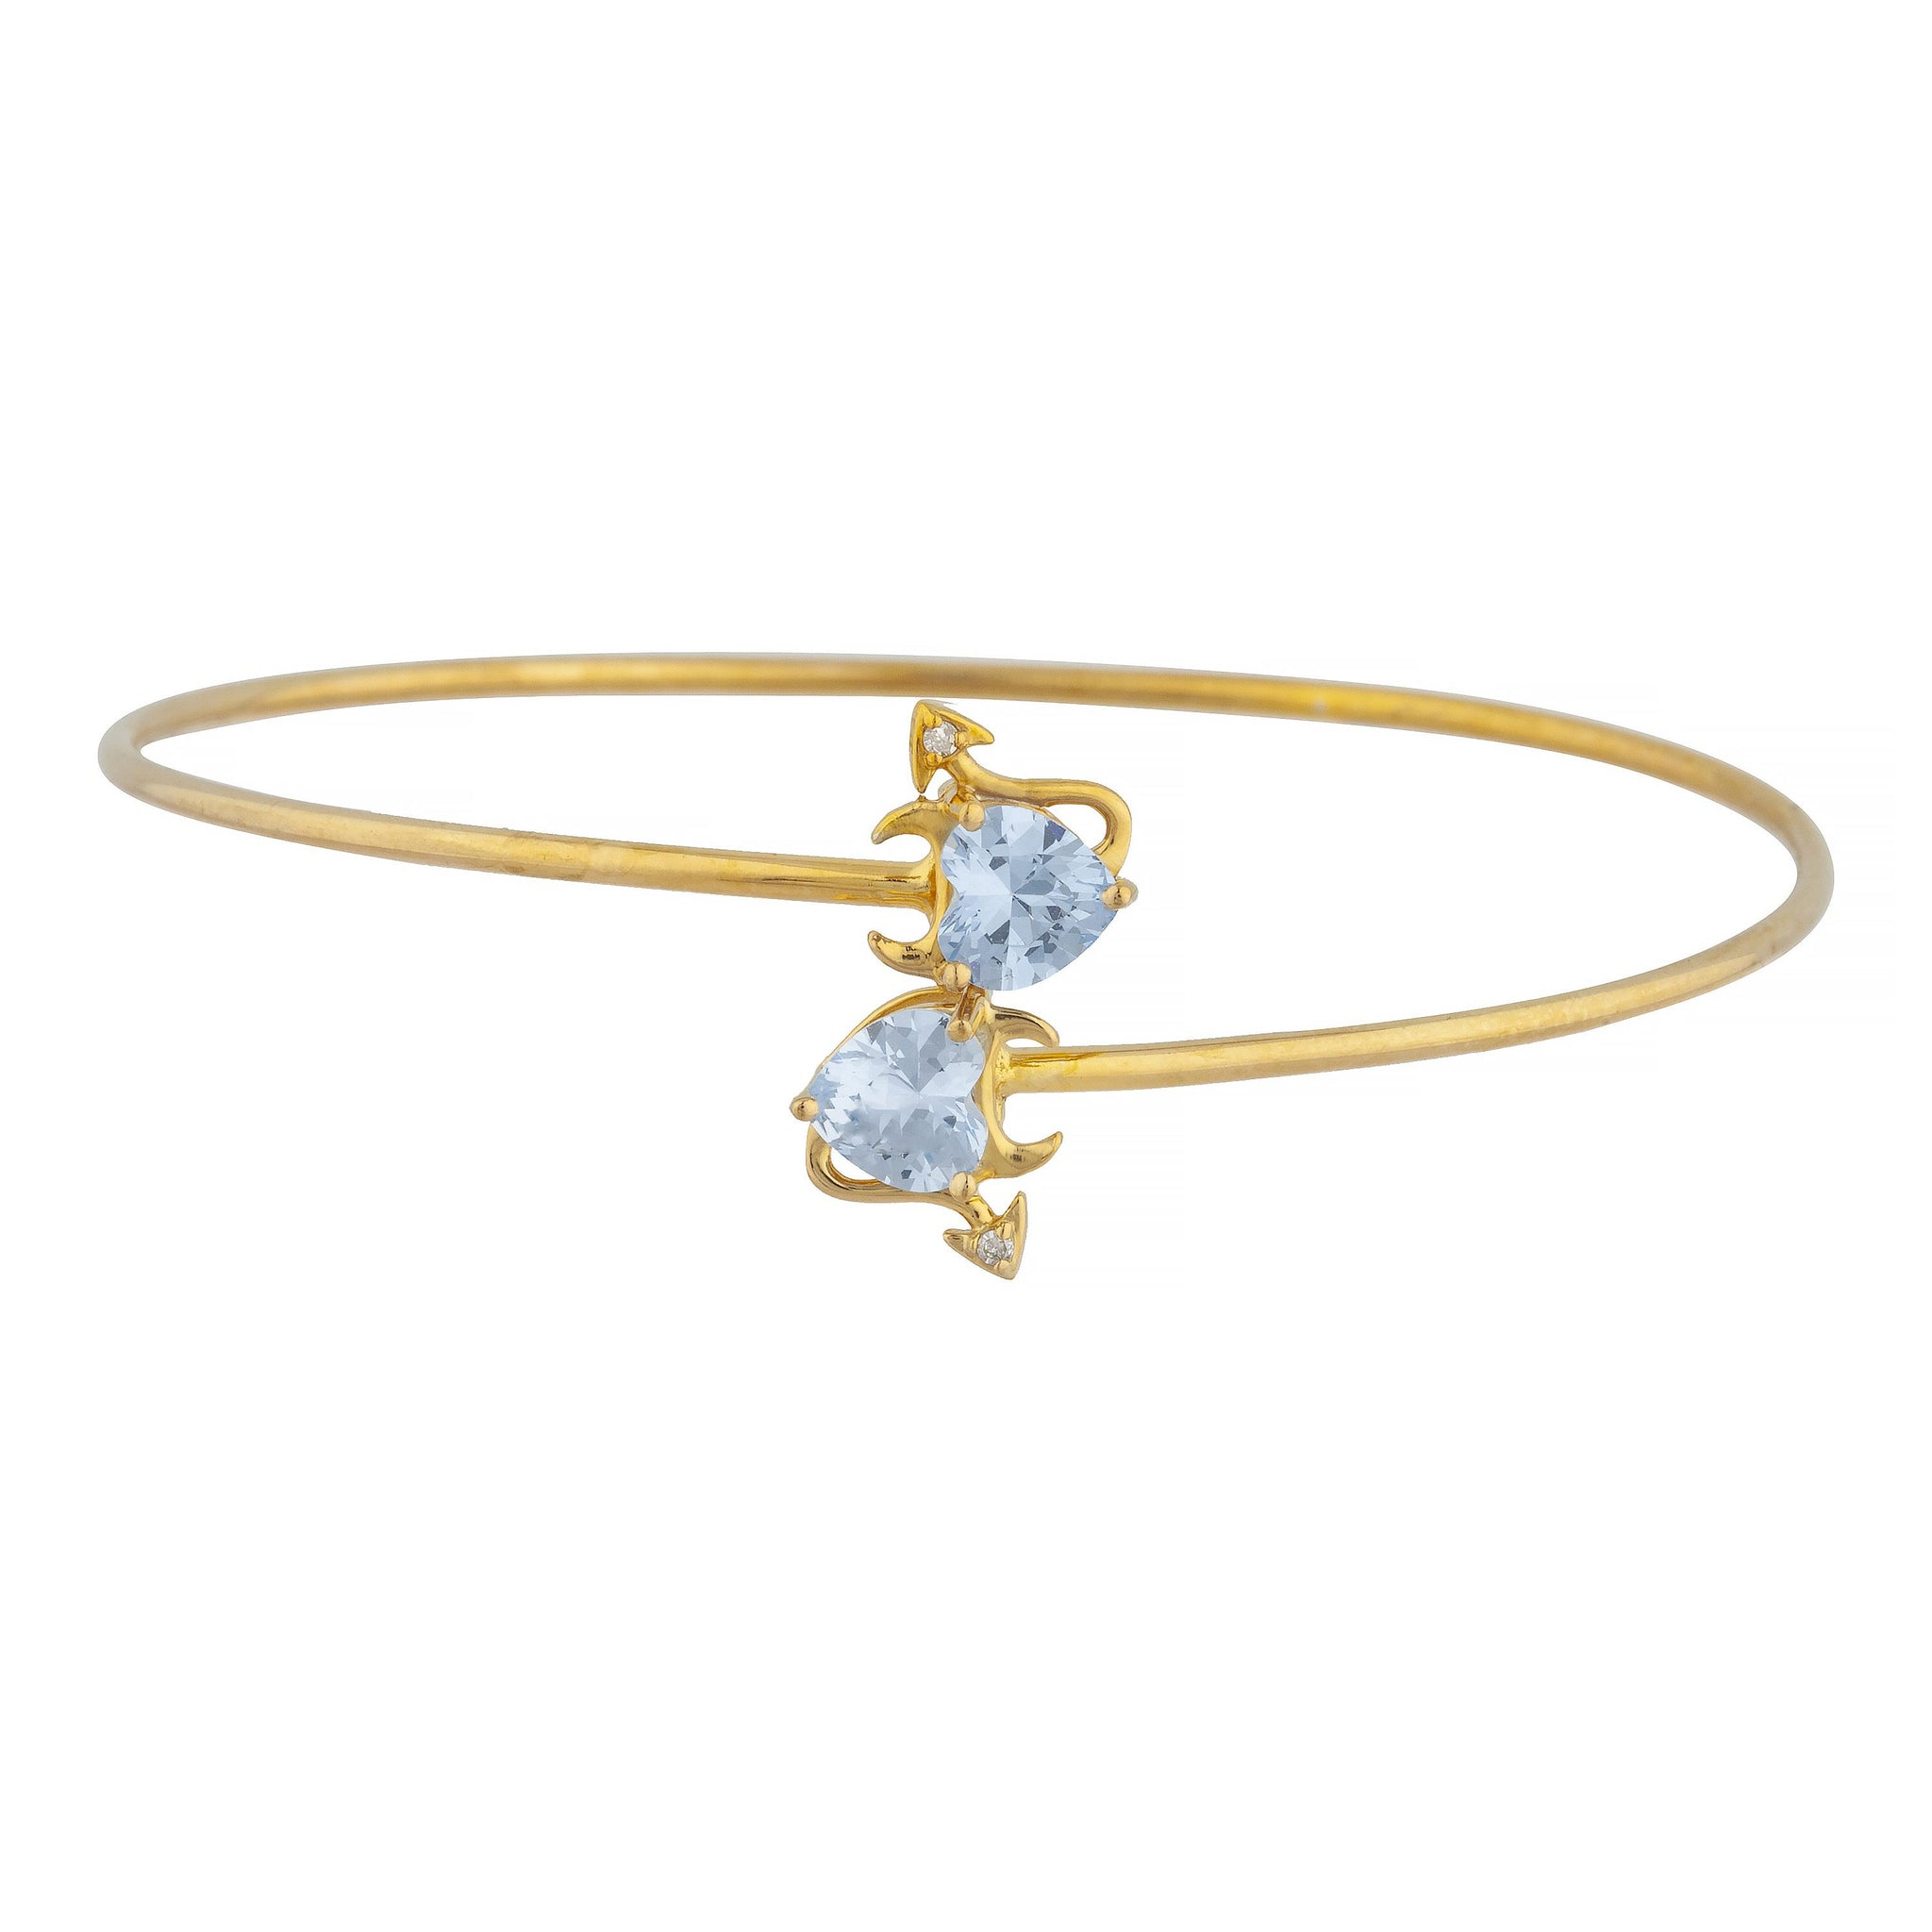 14Kt Gold Genuine Aquamarine & Diamond Devil Heart Bangle Bracelet